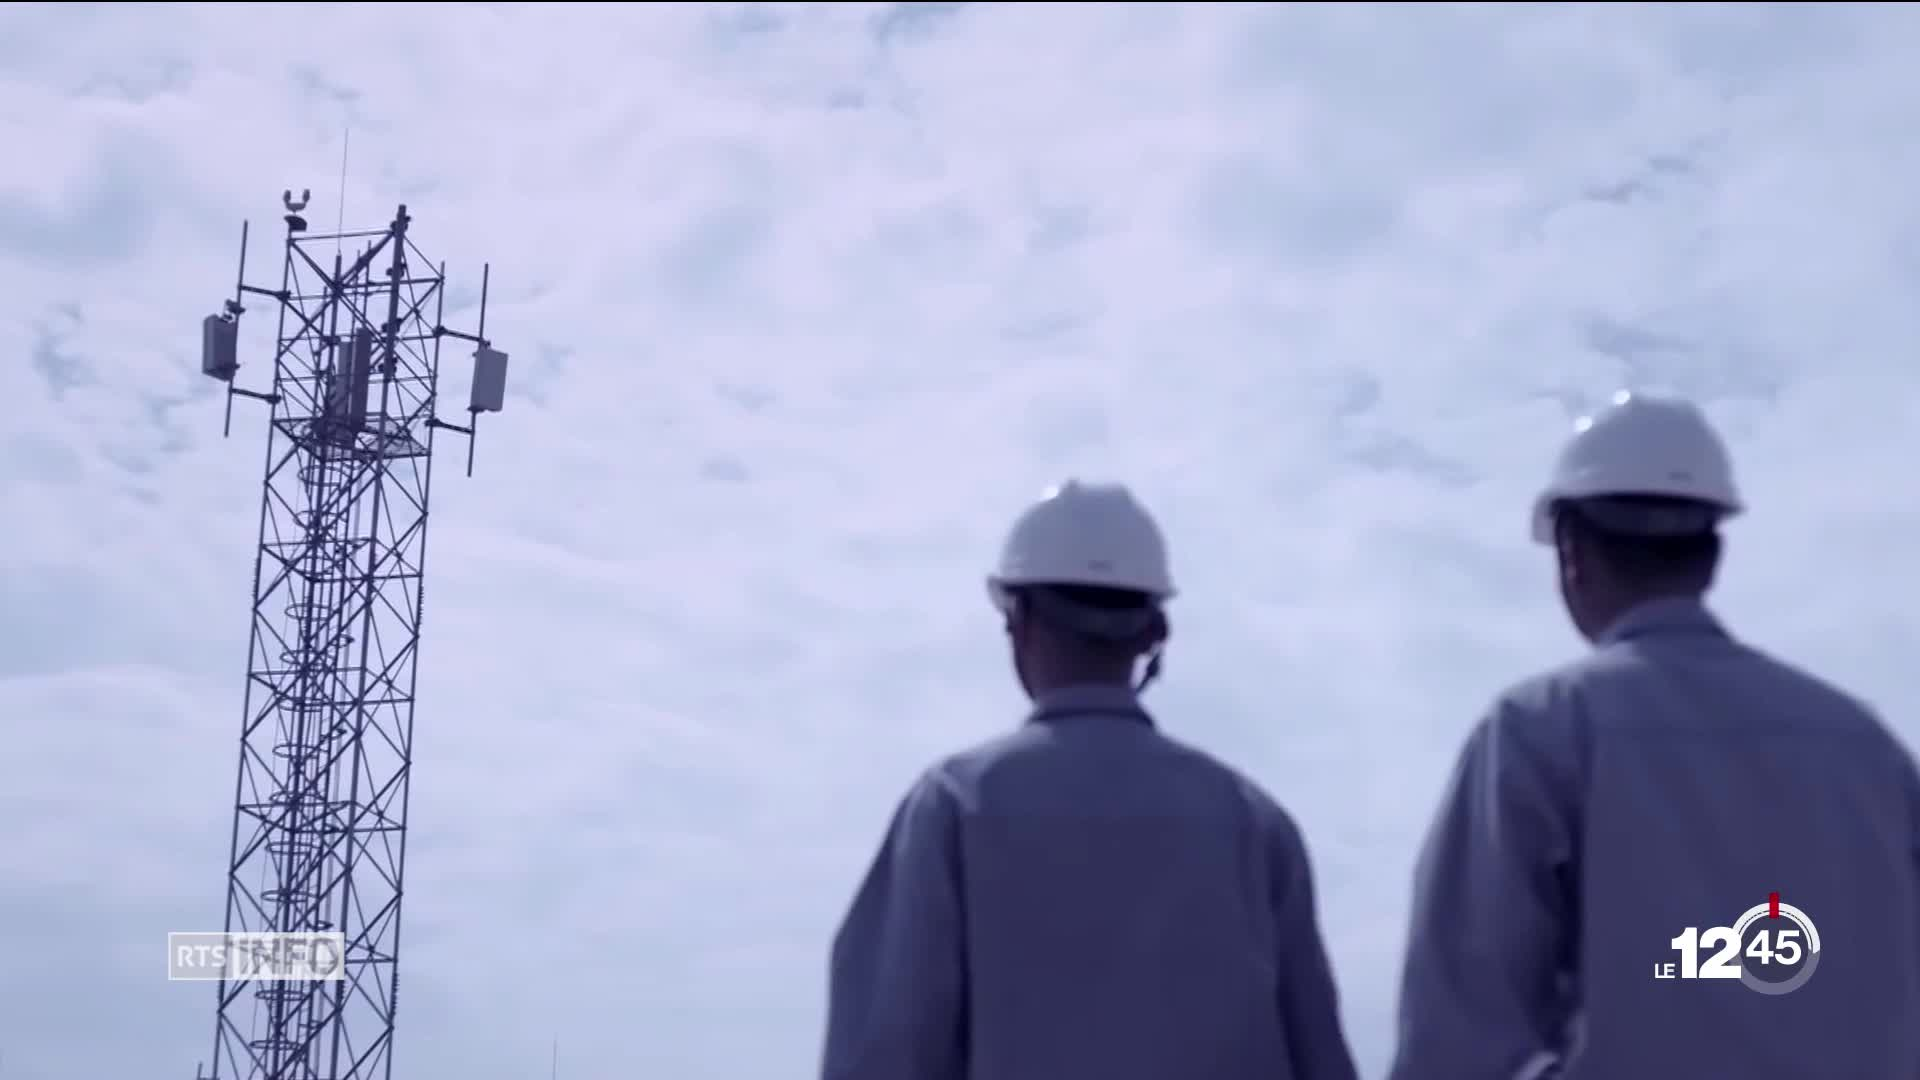 Le Jura gèle à son tour la construction d'antennes 5G.